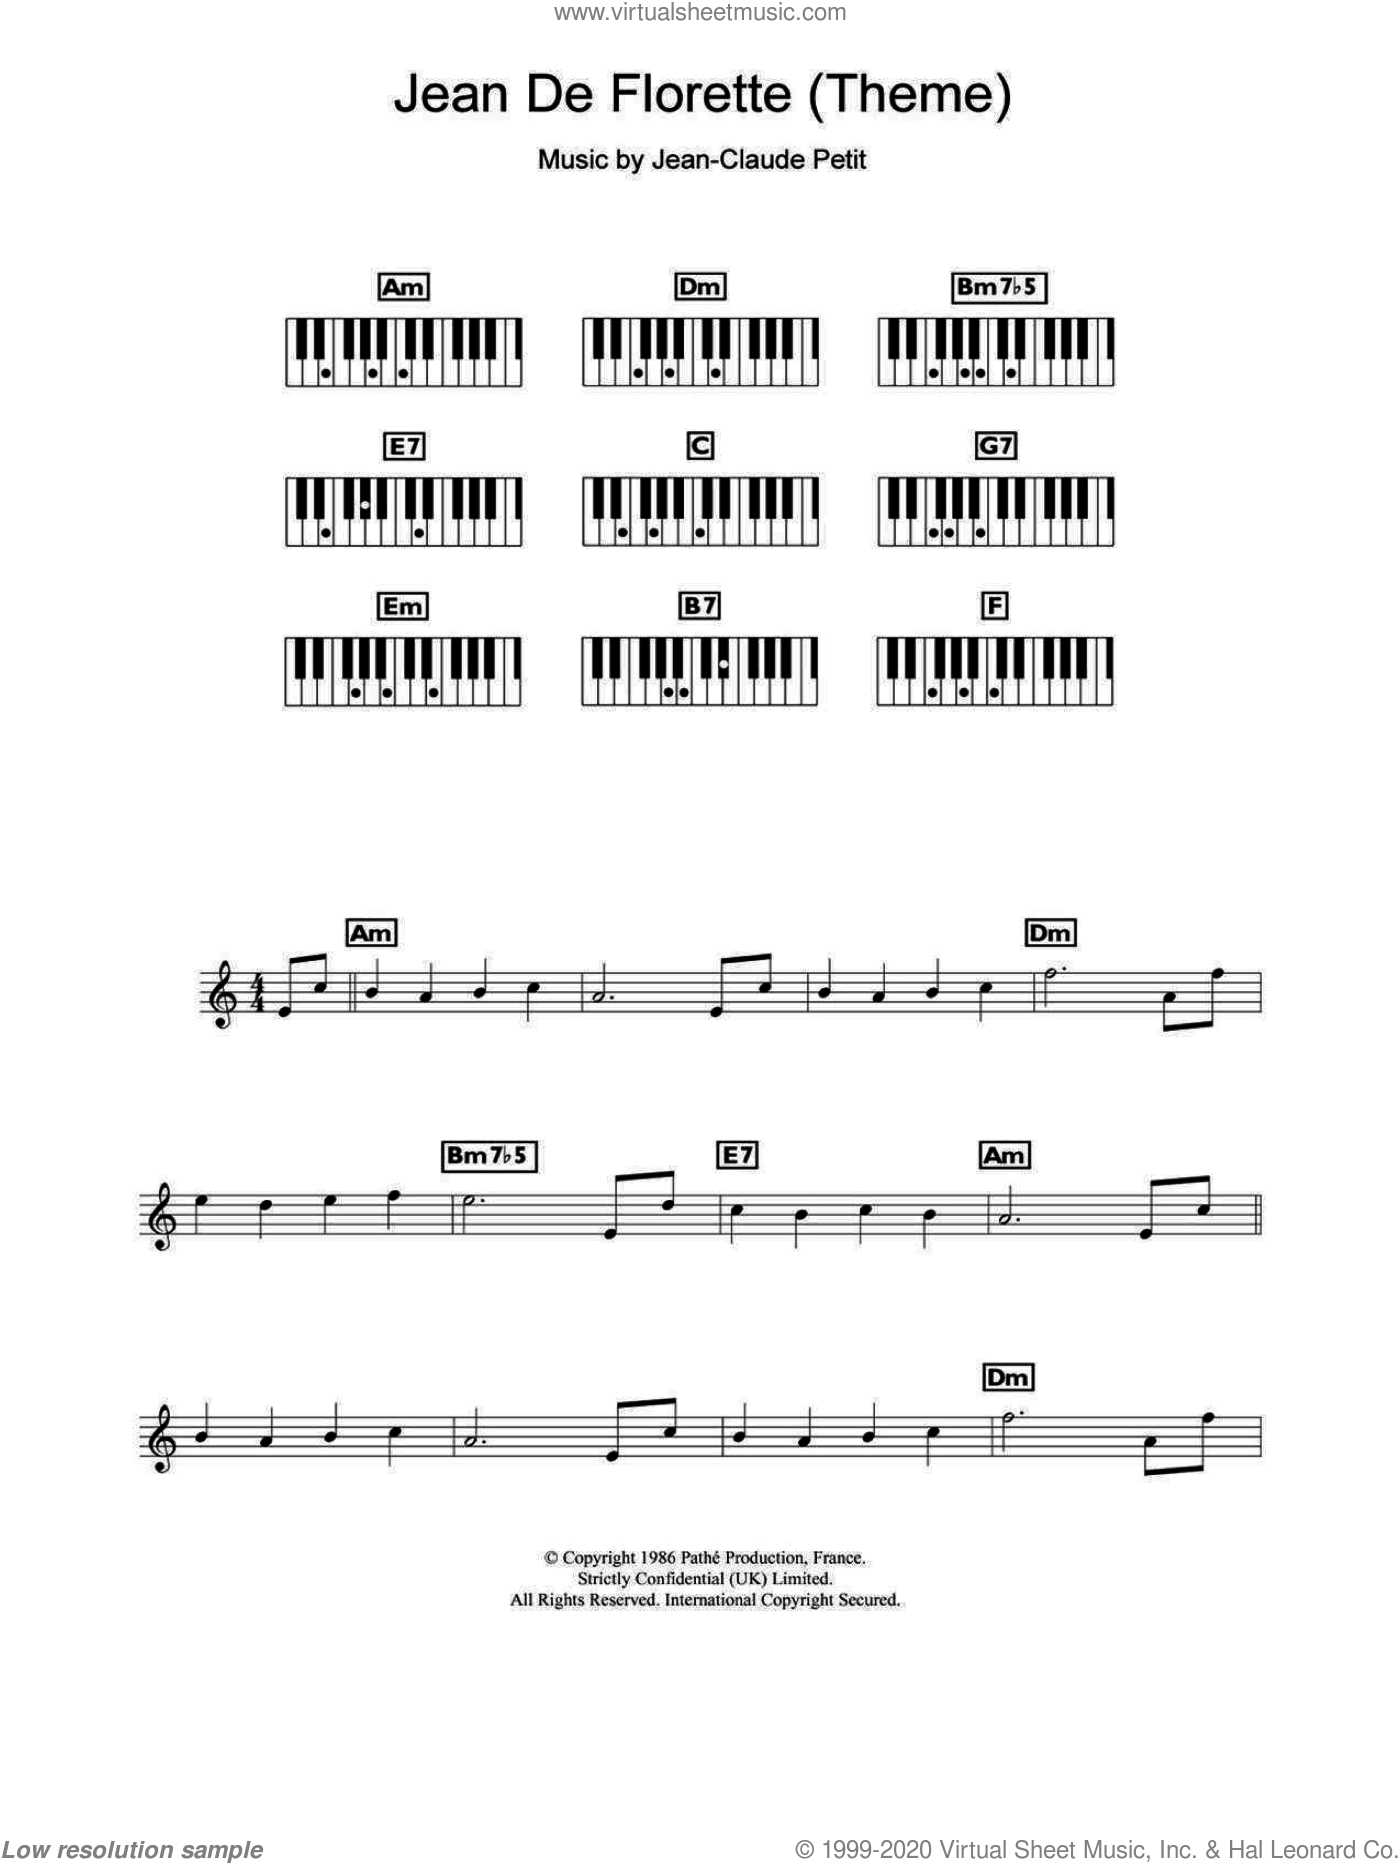 Jean de Florette (Theme) sheet music for piano solo (chords, lyrics, melody) by Jean-claude Petit. Score Image Preview.